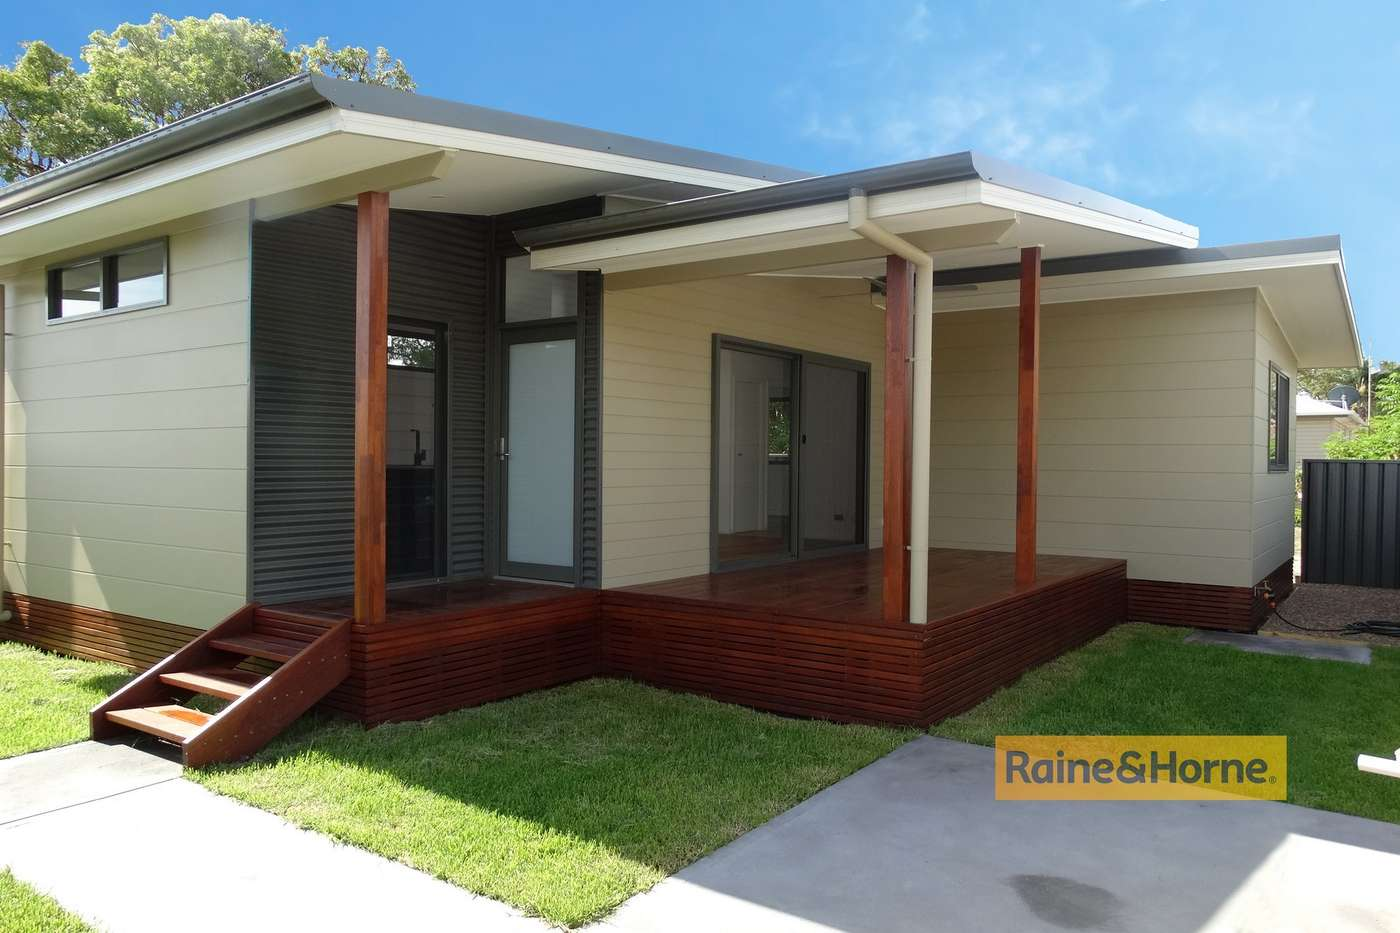 Main view of Homely house listing, 54A Oxford Street, Umina Beach, NSW 2257